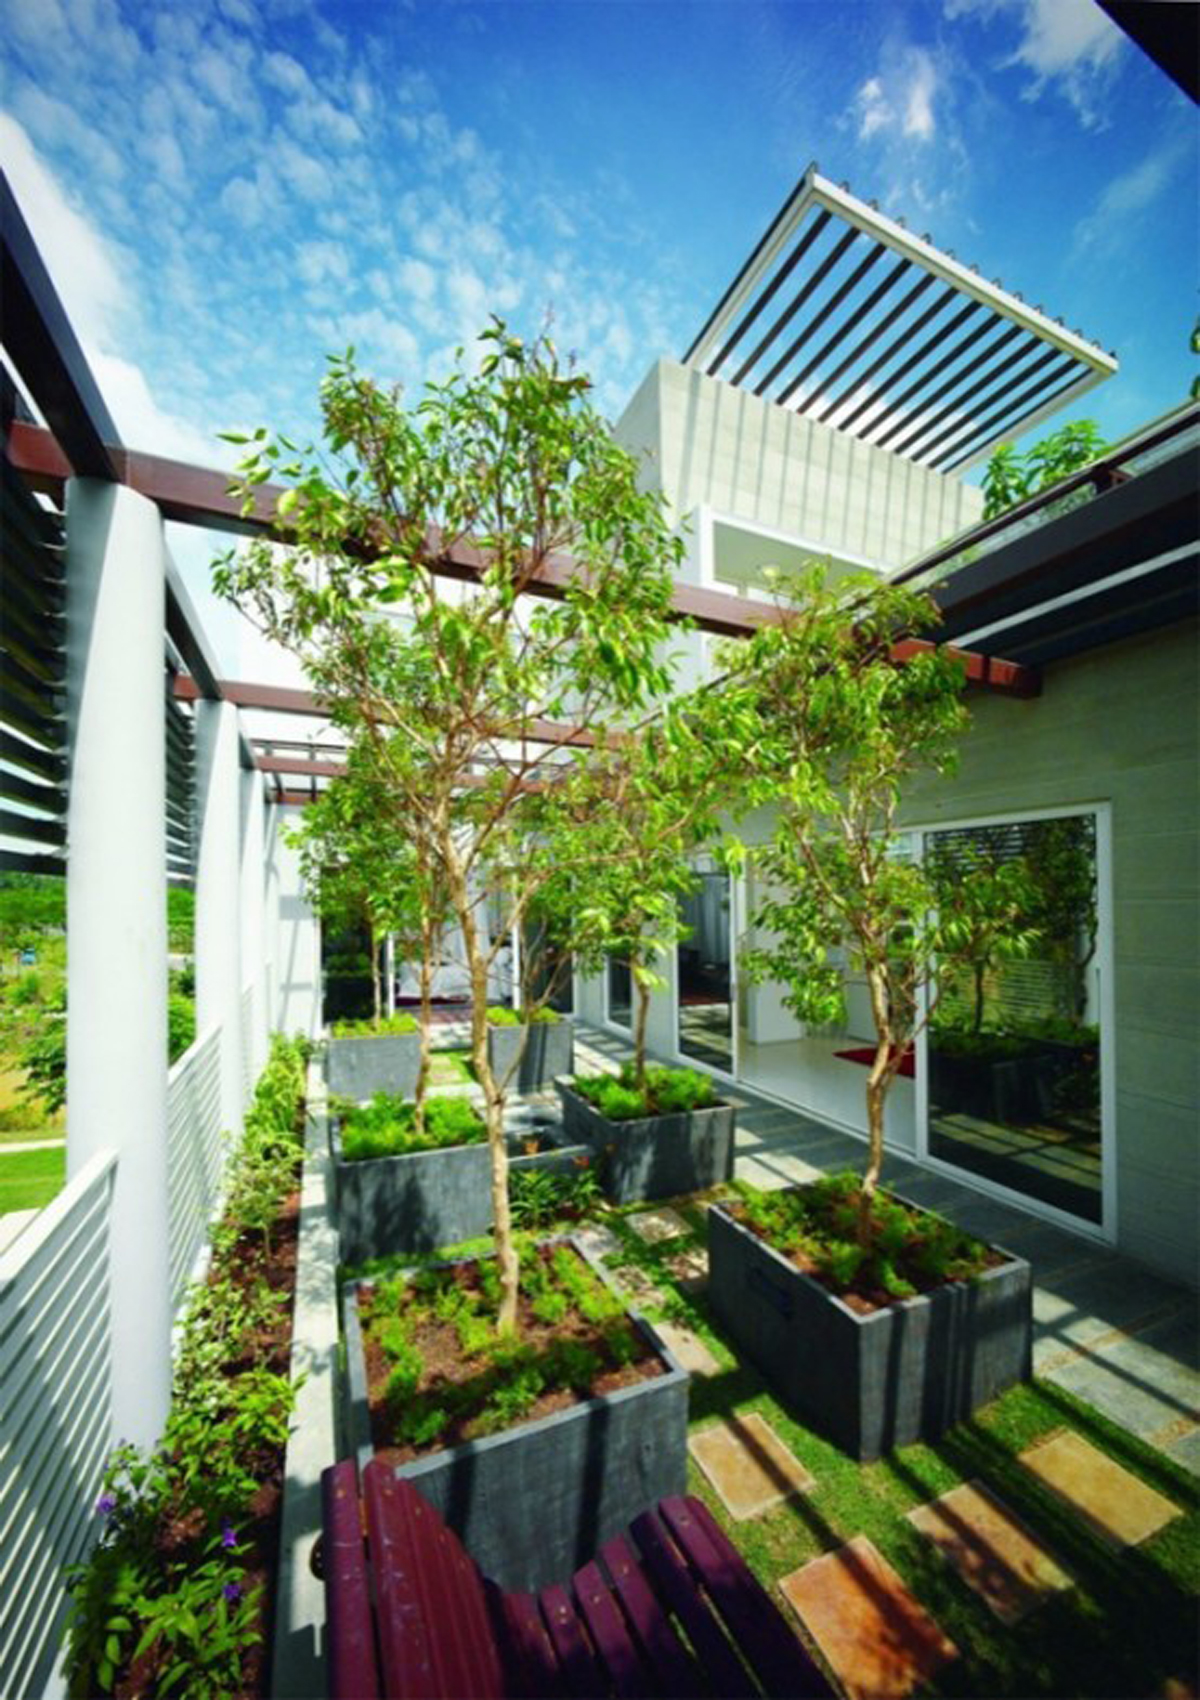 Eco Home Design Ideas: » Great Tropical Houses In Urban Environment, Eco-Friendly